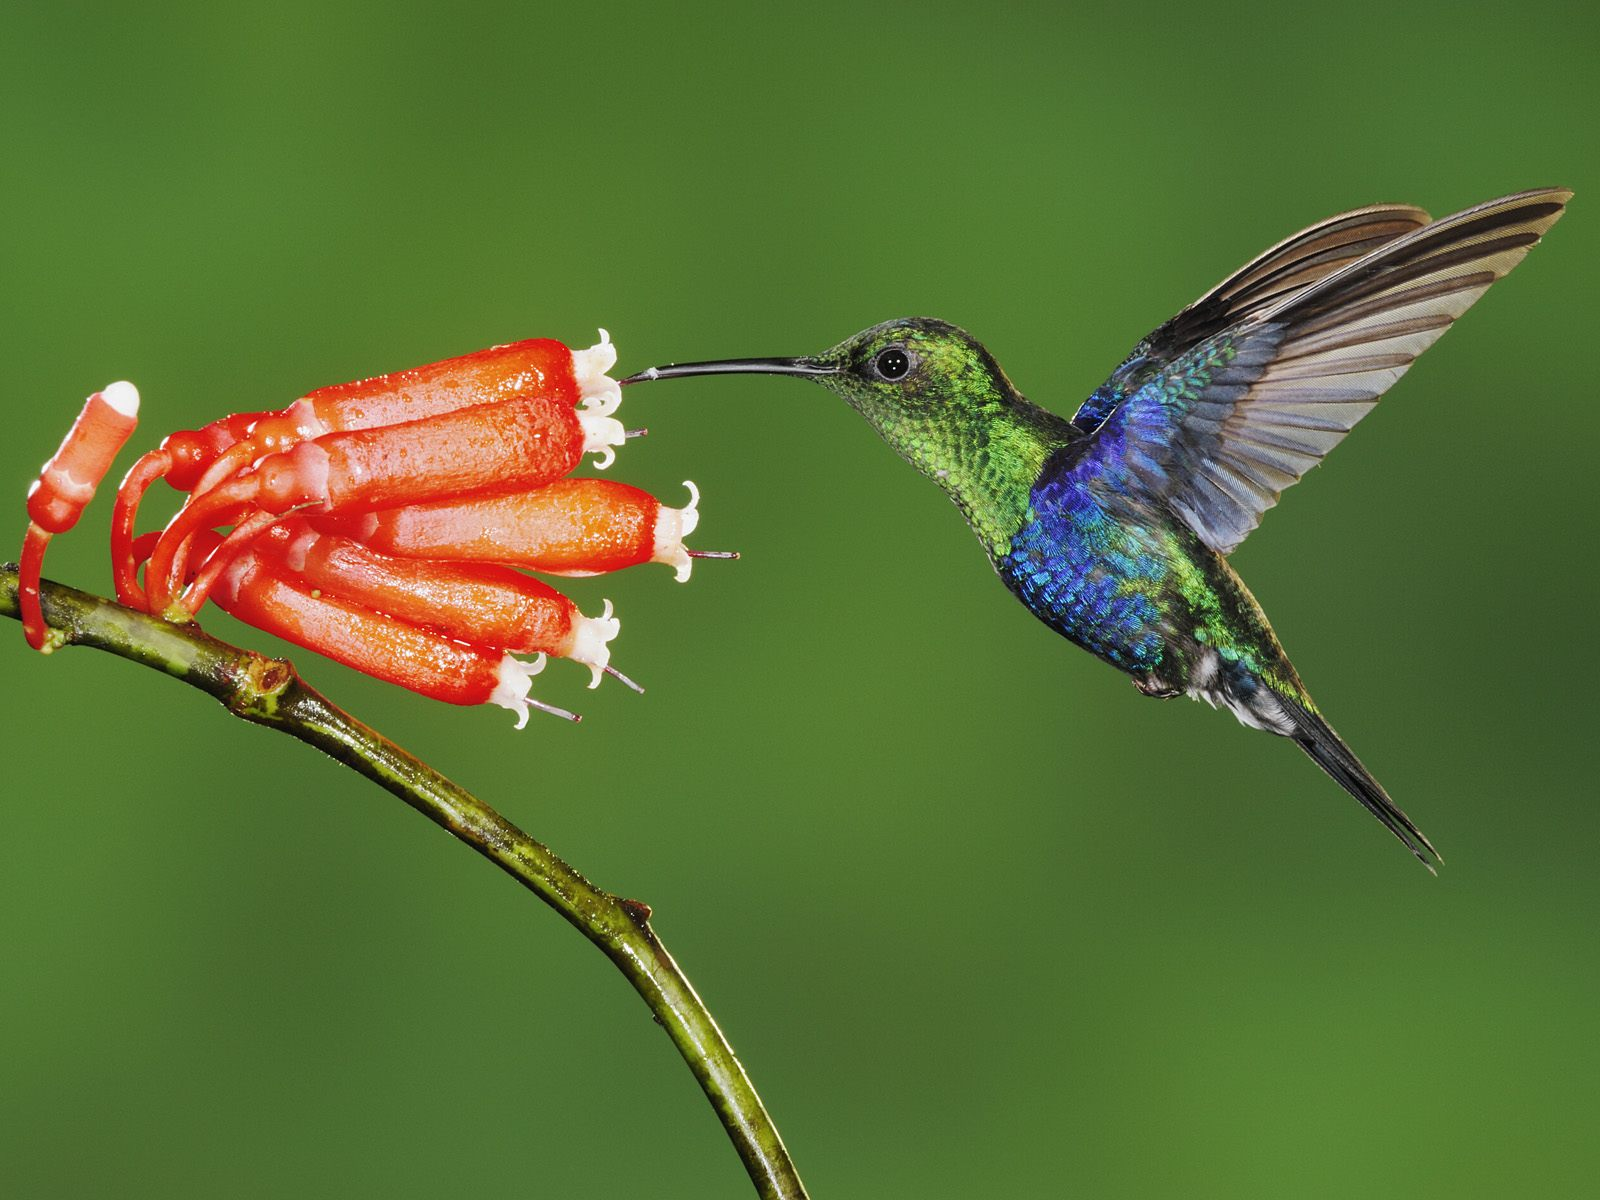 Wide screen humming bird sketches pc wallpapers 1600x1200